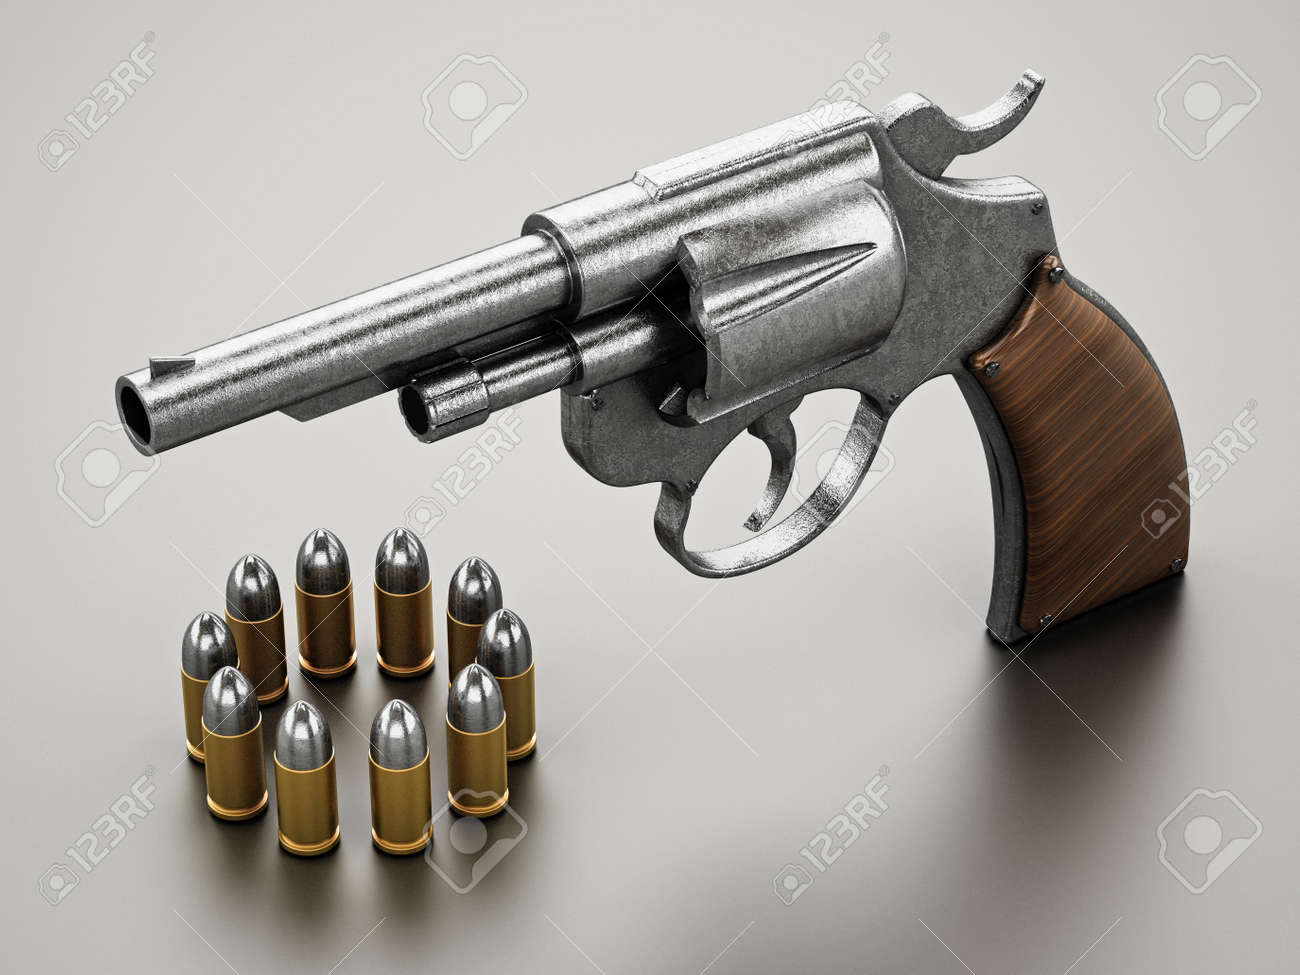 Generic revolver and bullets with soft reflection. 3D illustration. - 172238258